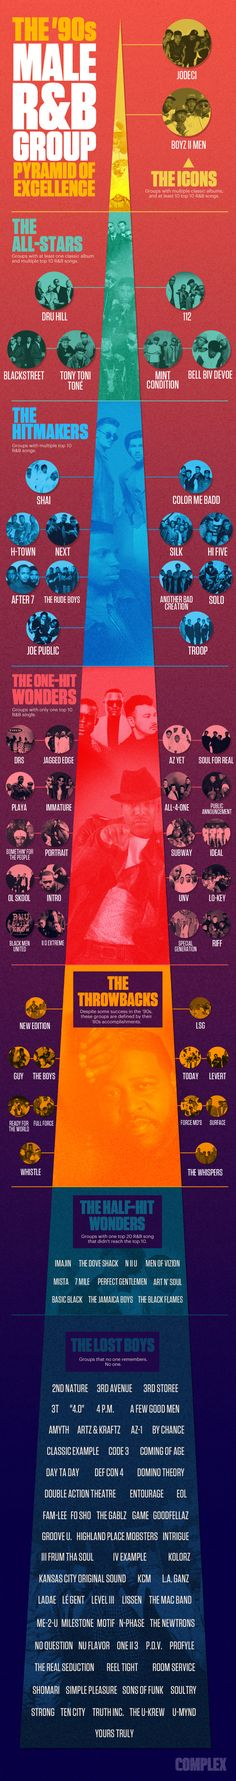 The '90s Male RB Group Pyramid of Excellence infographics. #music #rnb #infographics http://www.pinterest.com/TheHitman14/musical-odds-ends/